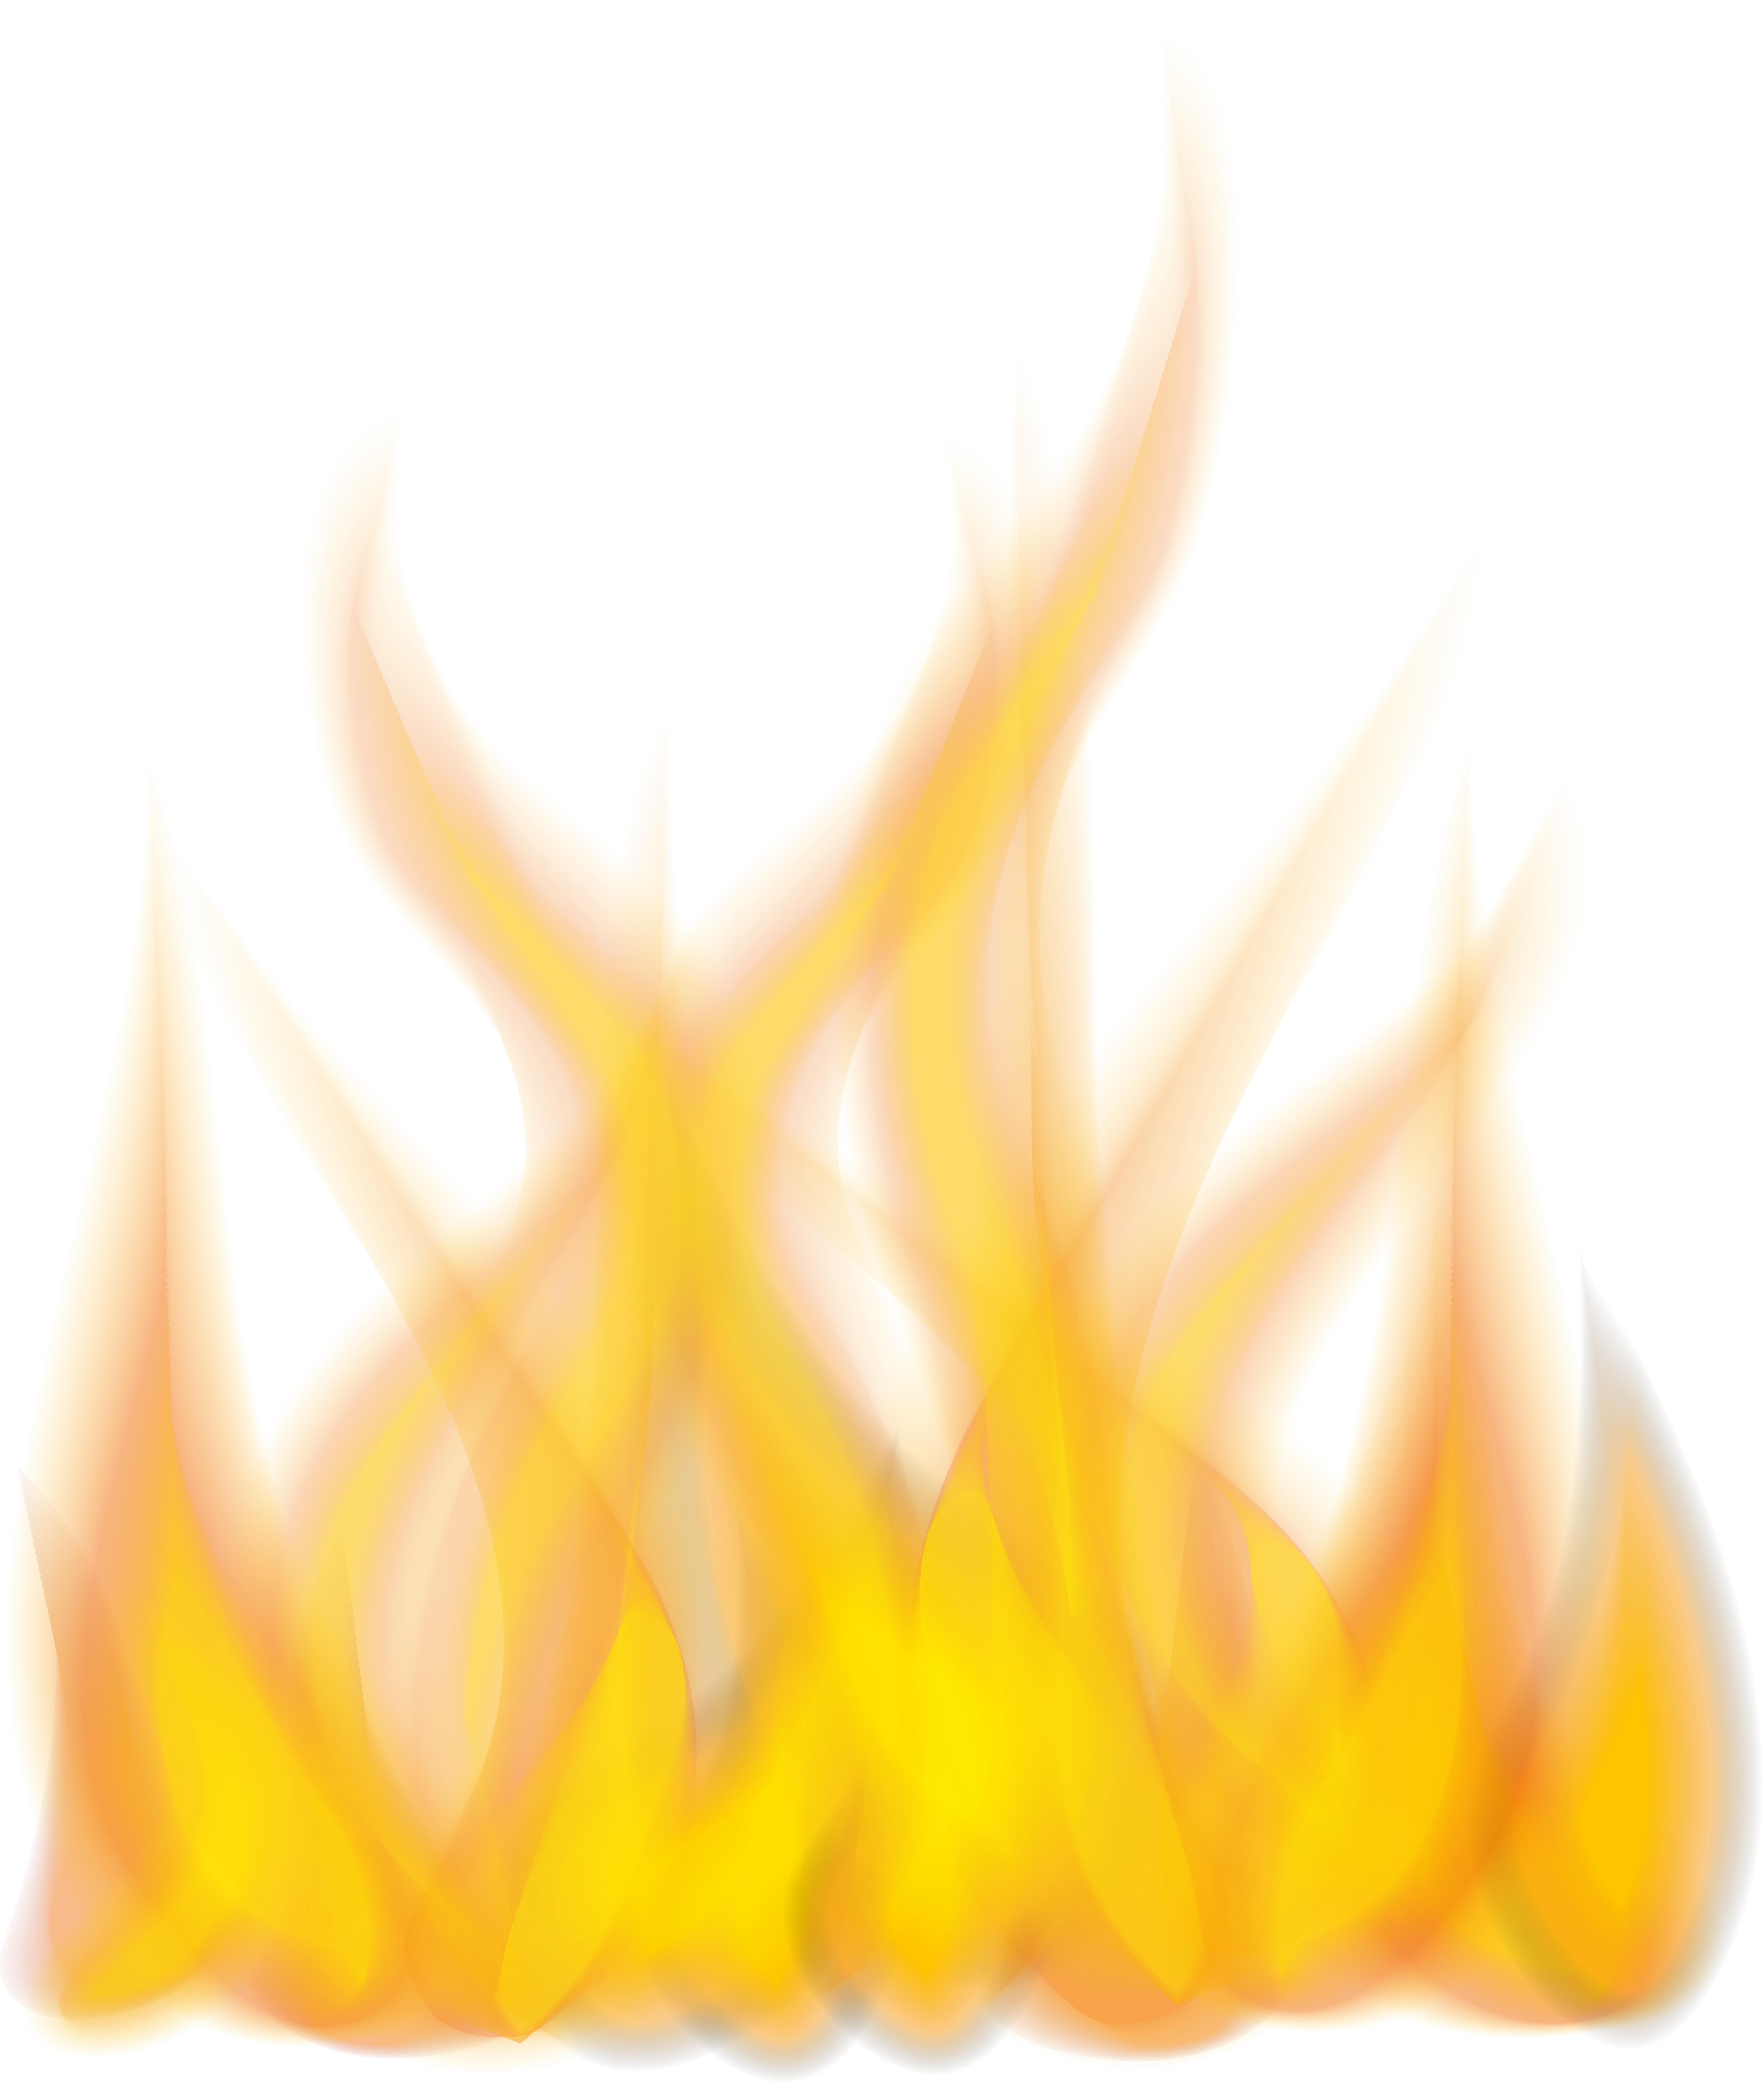 Fireplace clipart indoor. Fire flames png clip